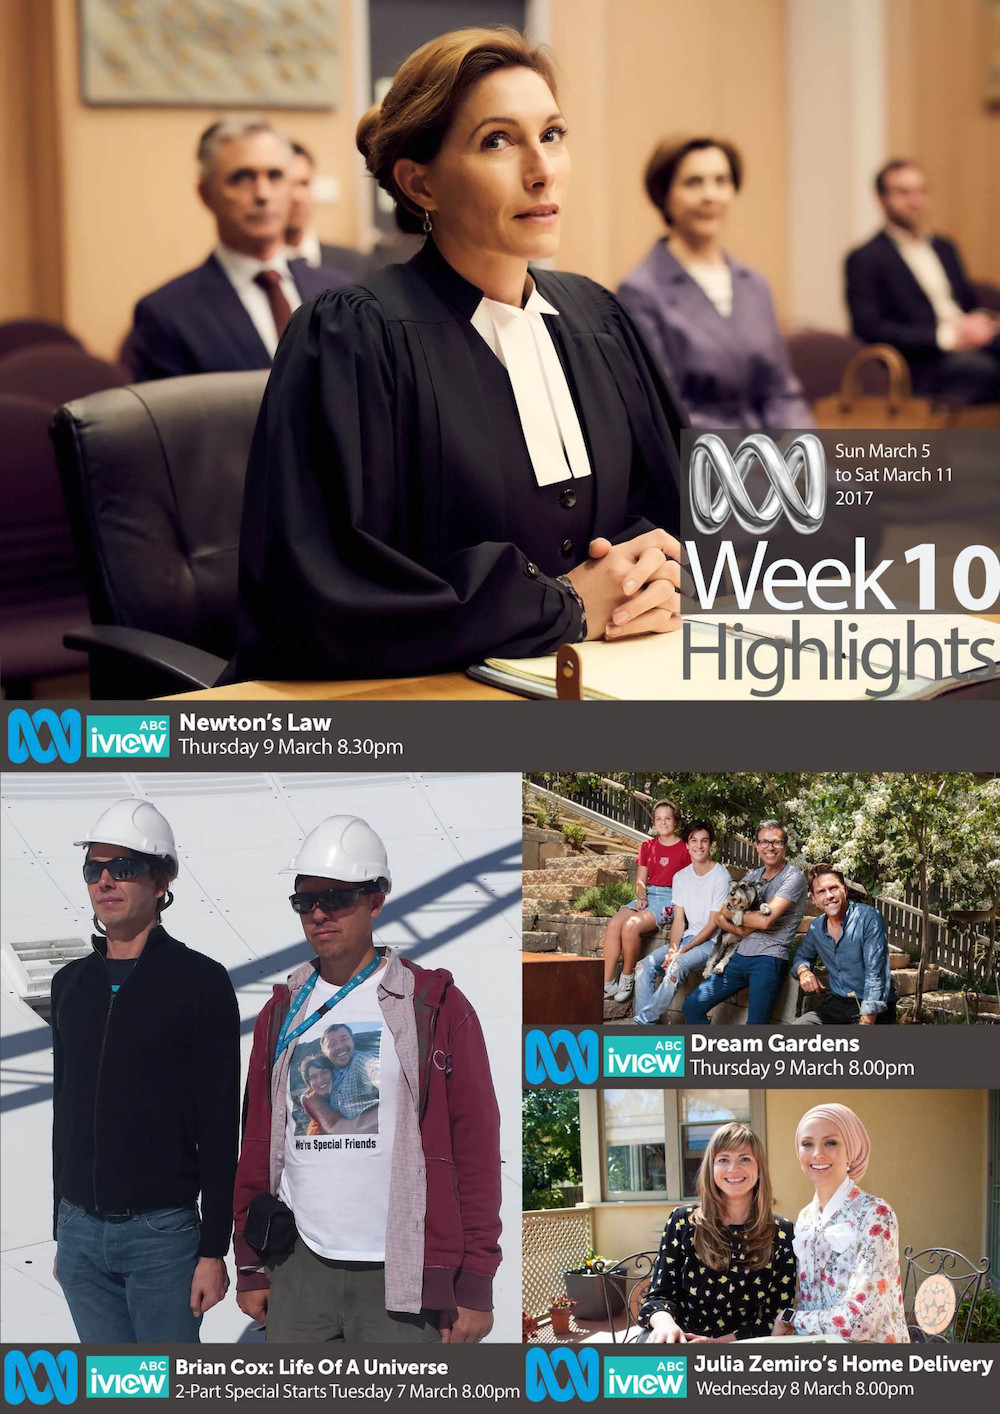 ABC Program Highlights - Week 10